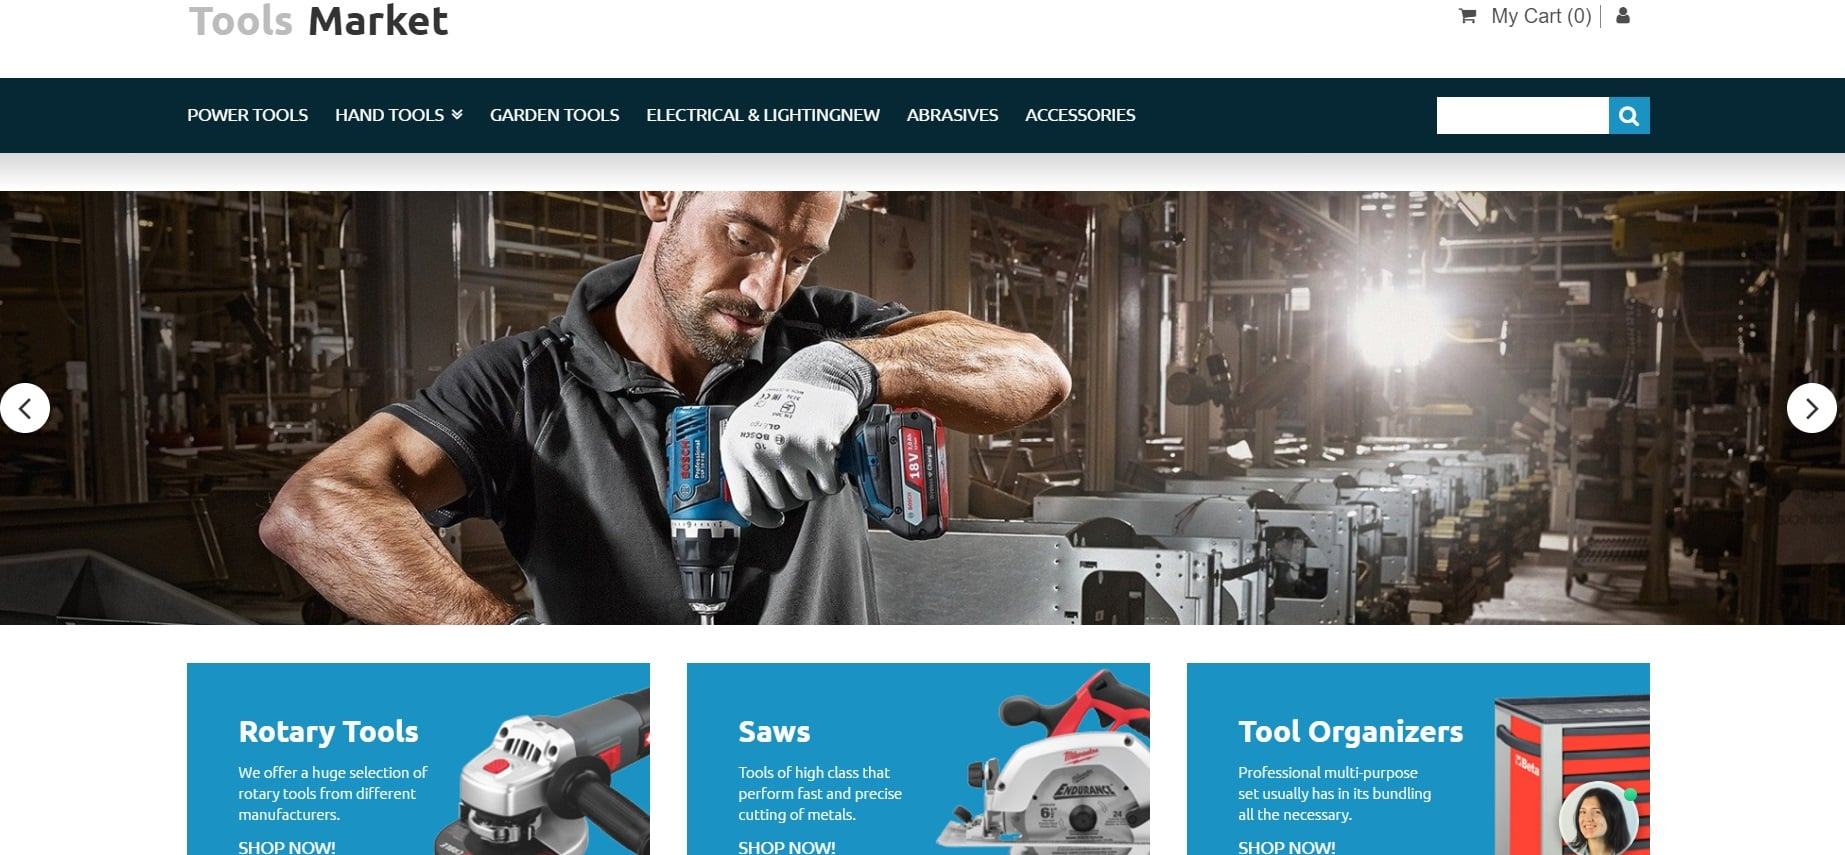 How to make an equipment website - tools market slider